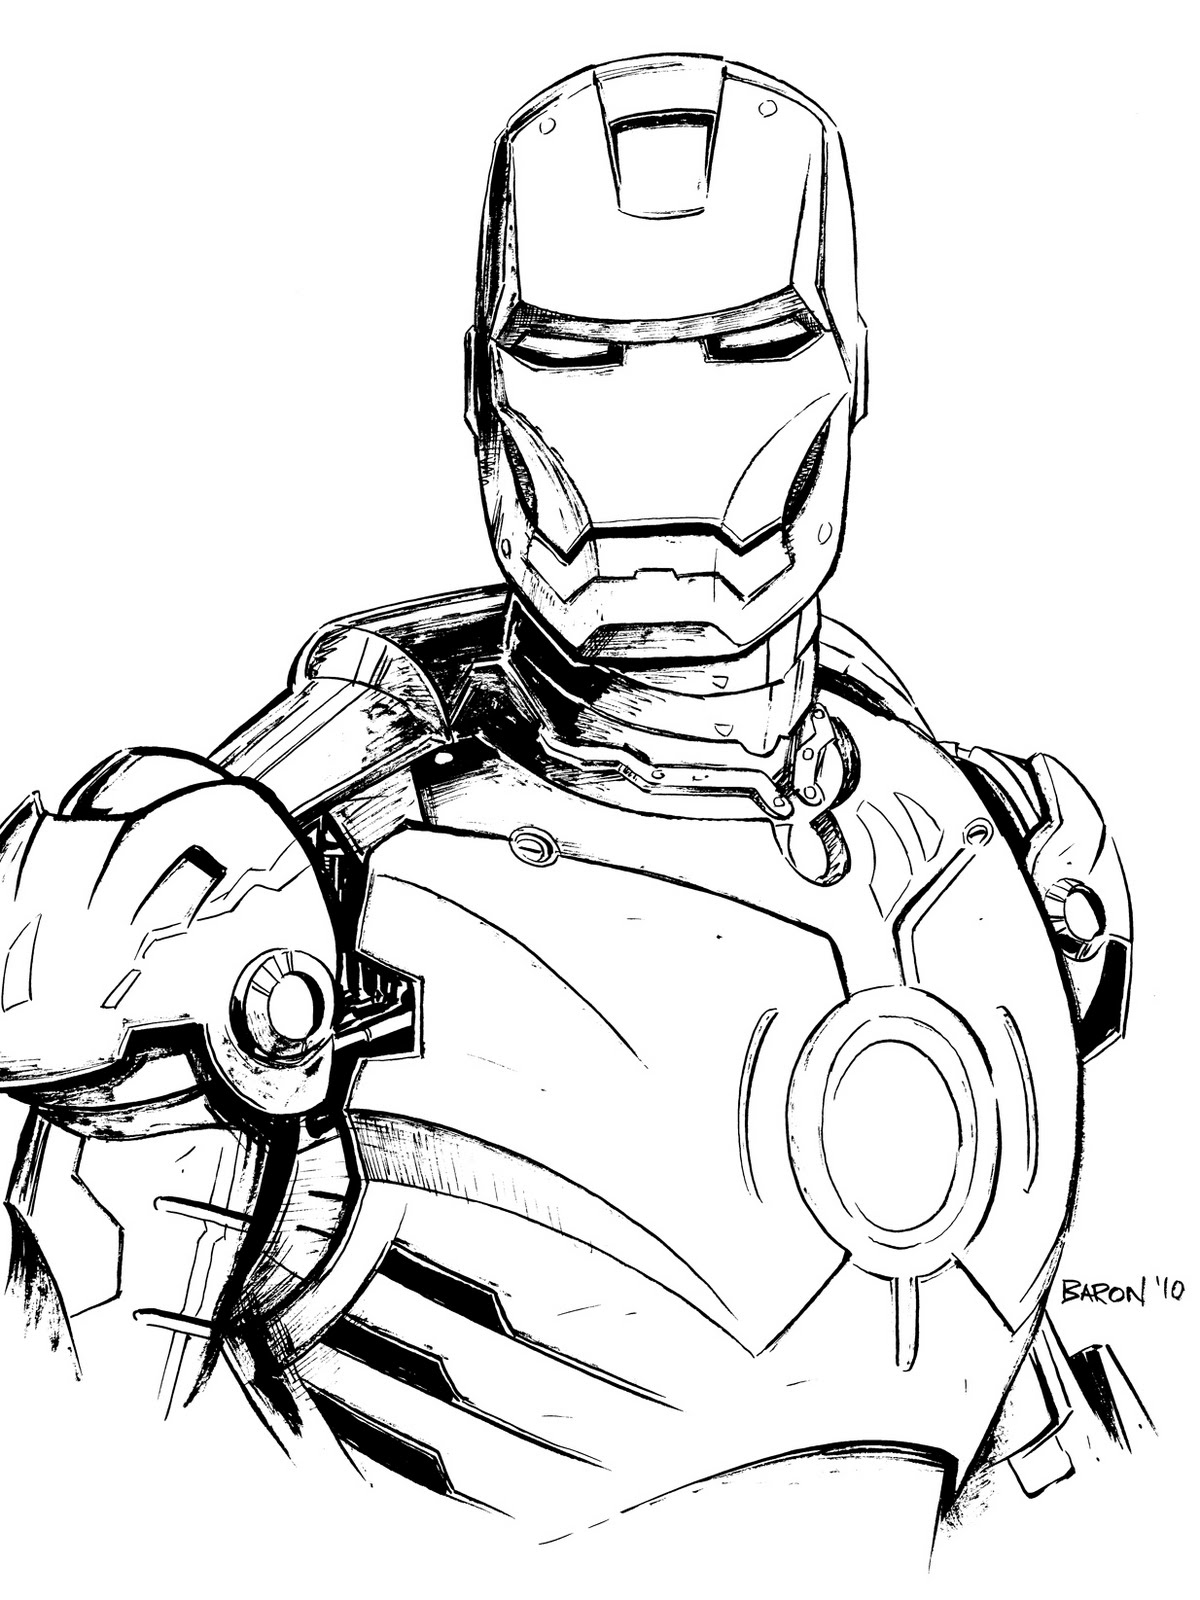 ironman images to color free printable iron man coloring pages for kids best images ironman color to